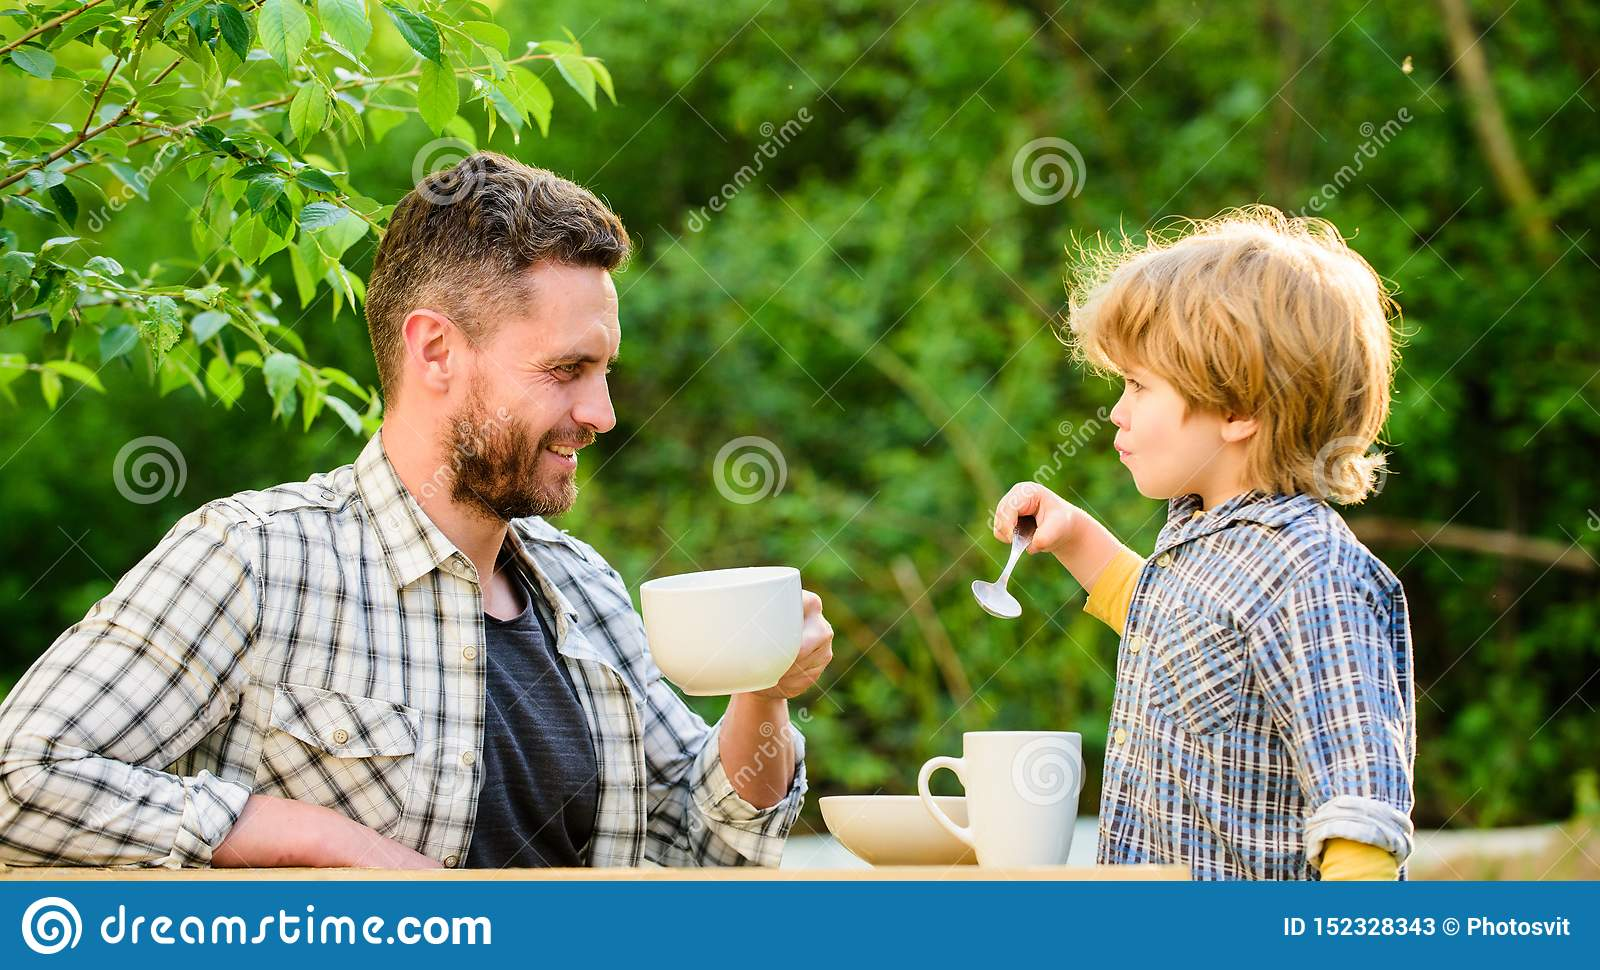 Dad and cute toddler boy having lunch outdoors. Child care. Feeding son natural foods. Feed in right way for childs